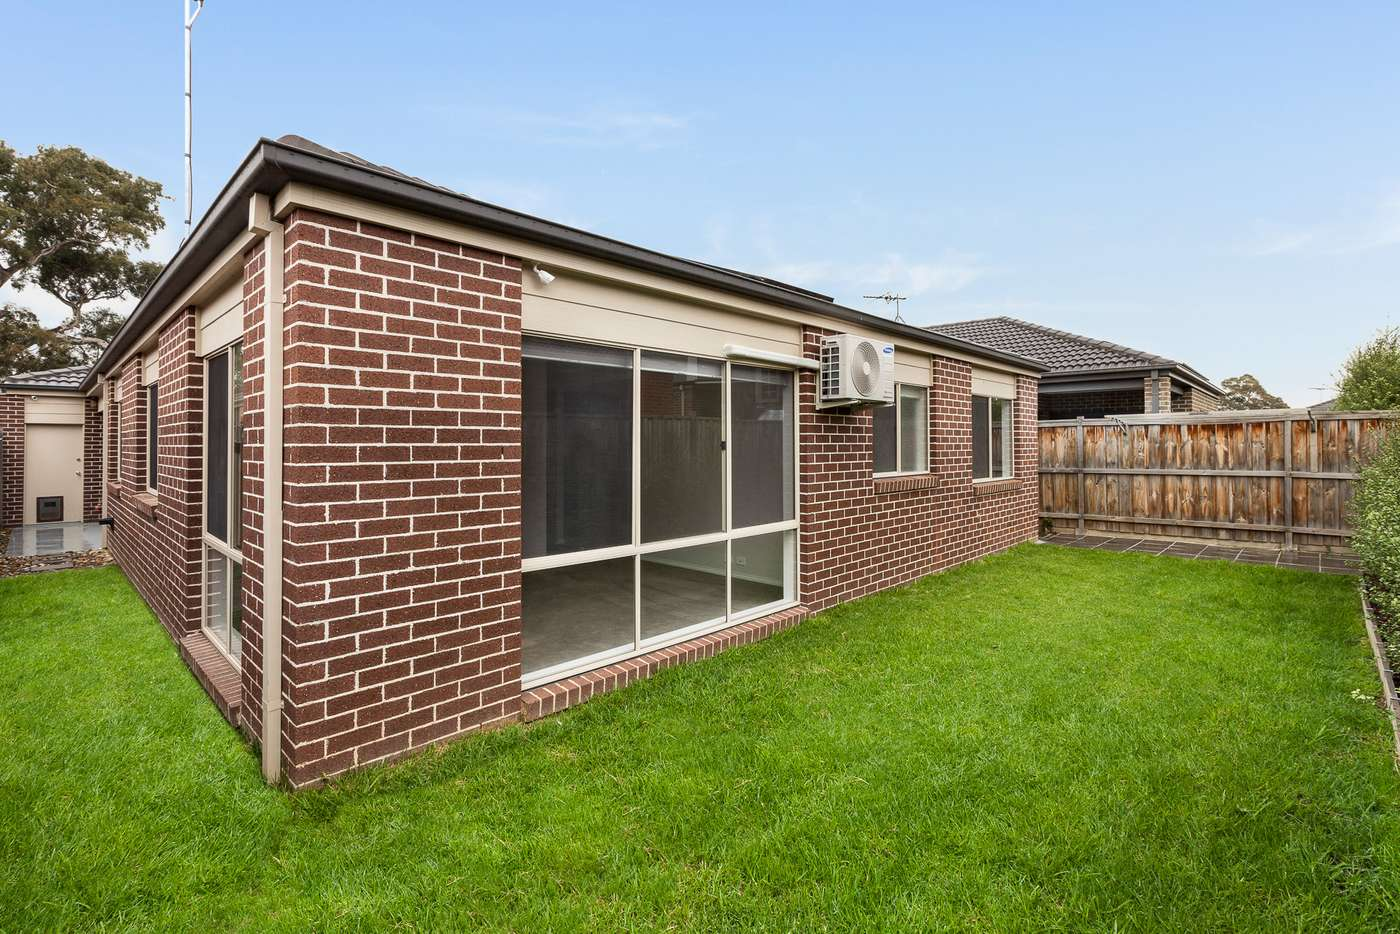 Seventh view of Homely house listing, 4 Tallulah Avenue, Doreen VIC 3754